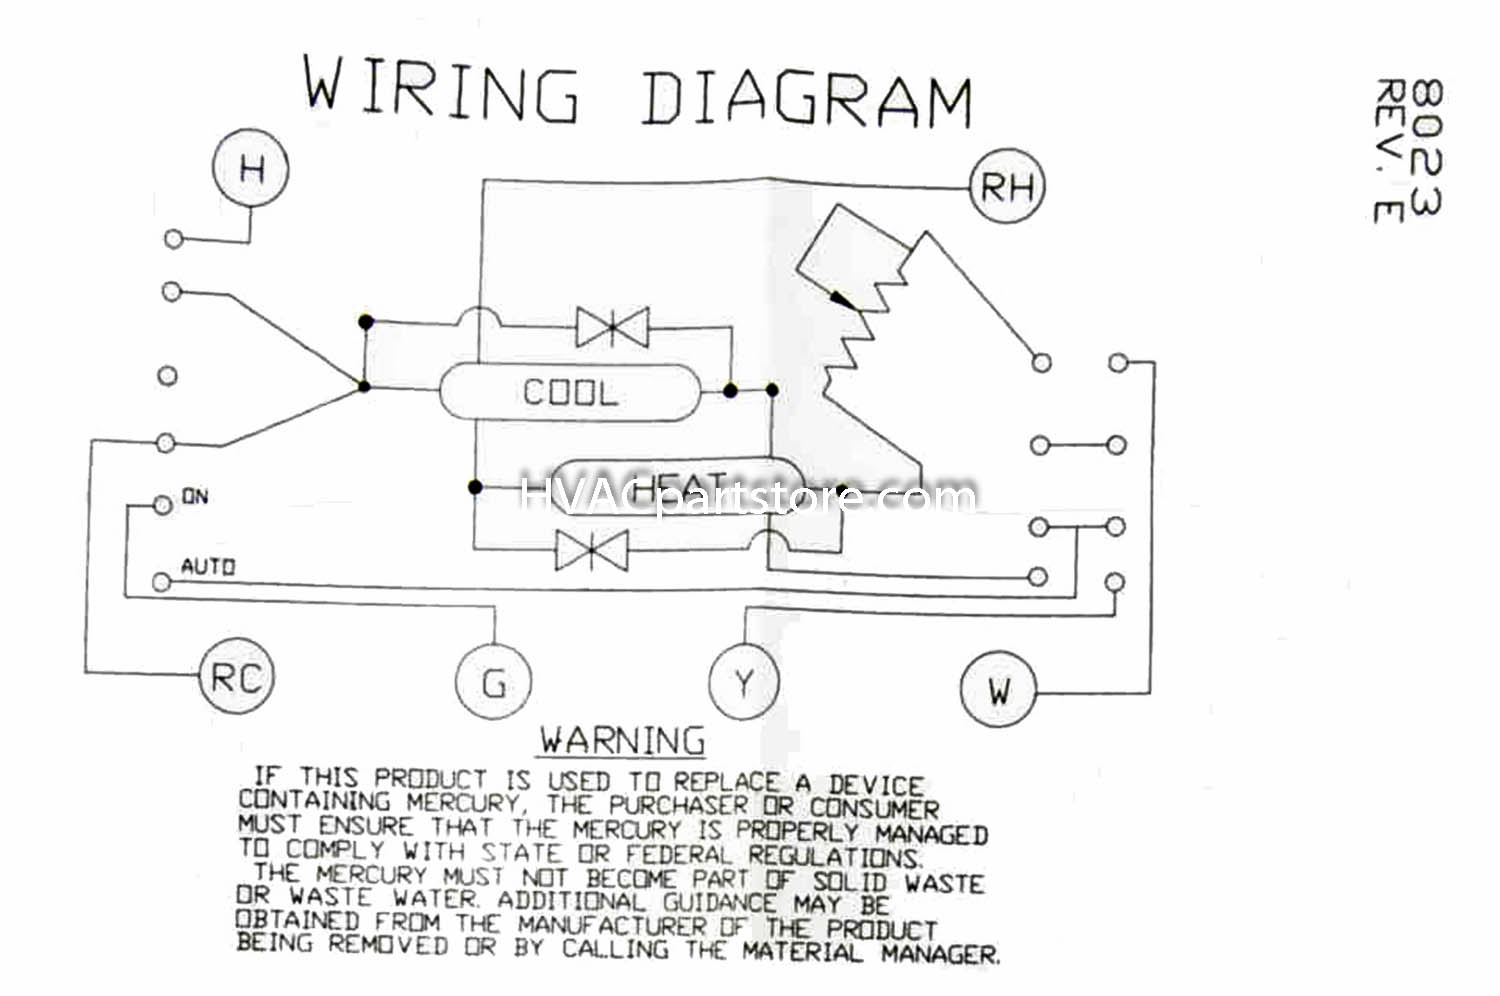 dometic rv thermostat wiring diagram horton c2150 free engine